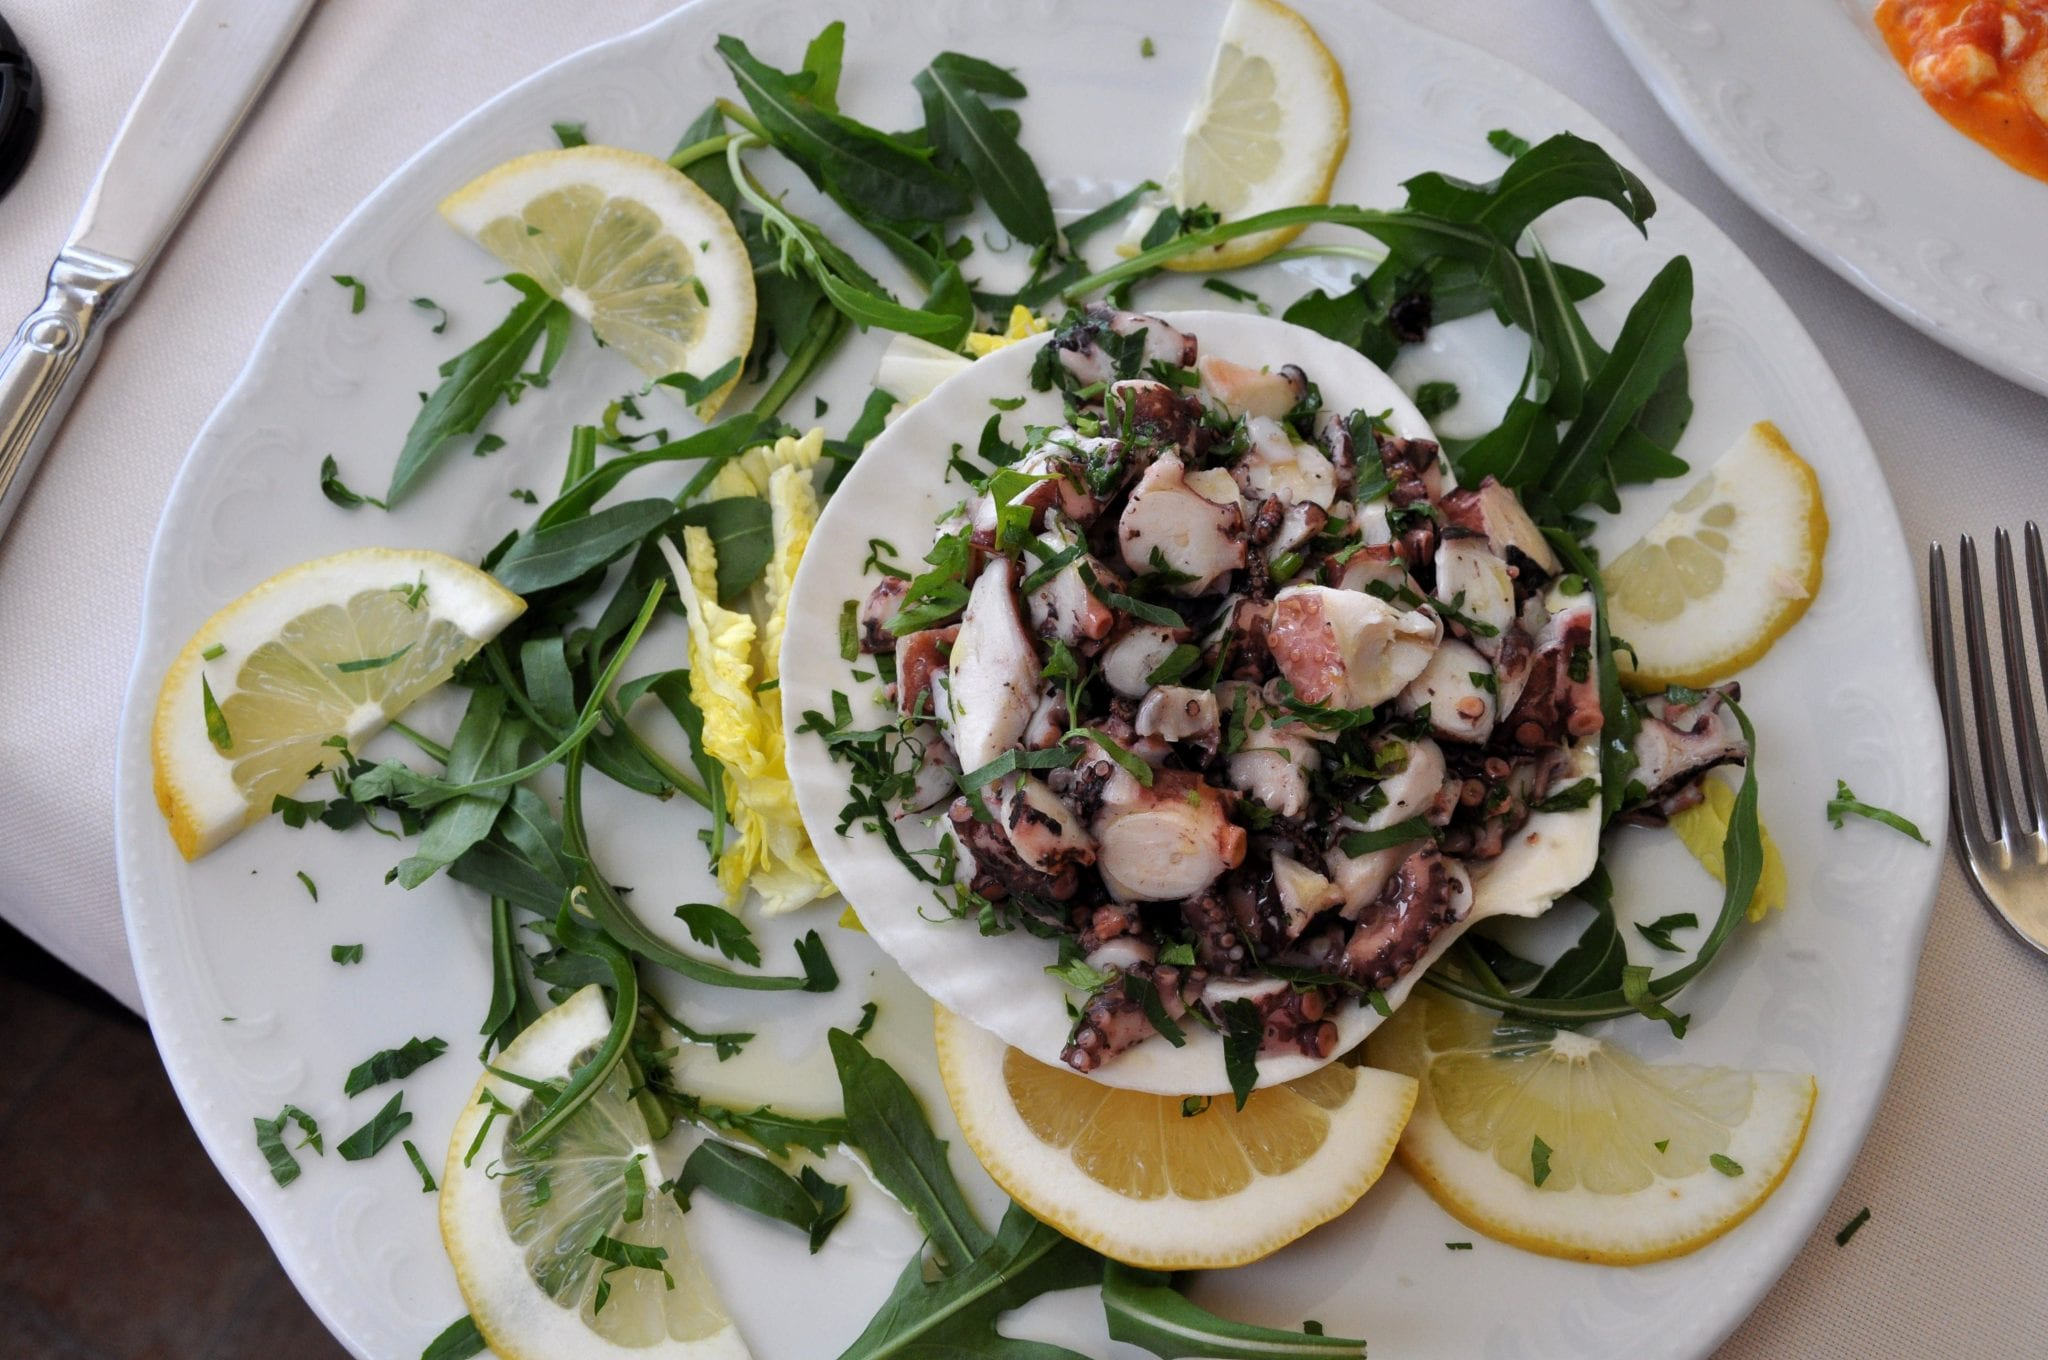 Octopus, a sustainable seafood in Italy